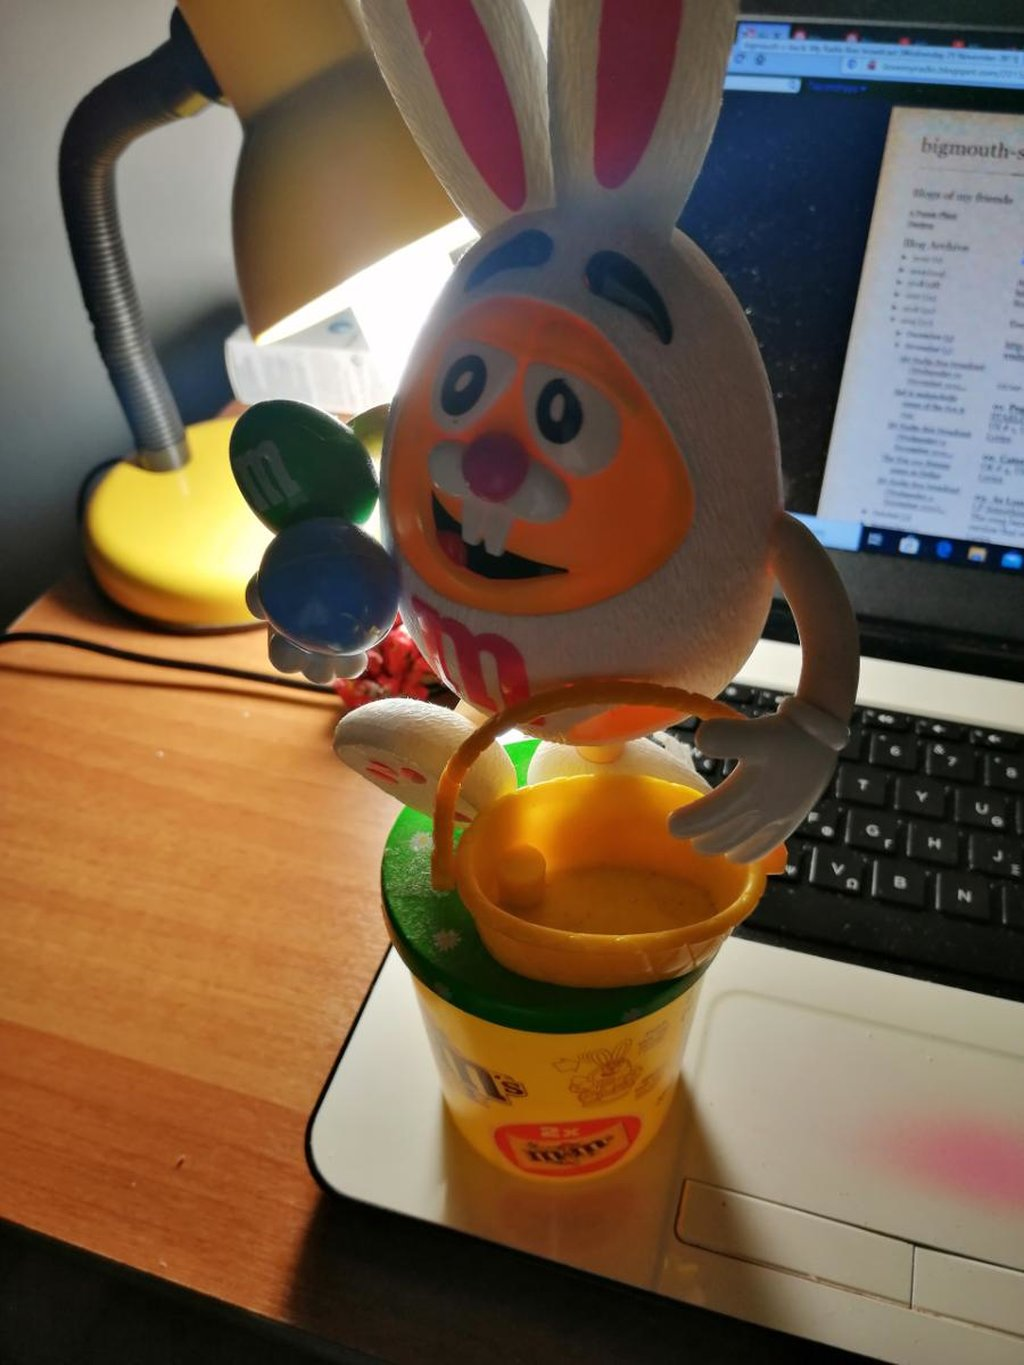 M&m's Yellow Easter Bunny for sale